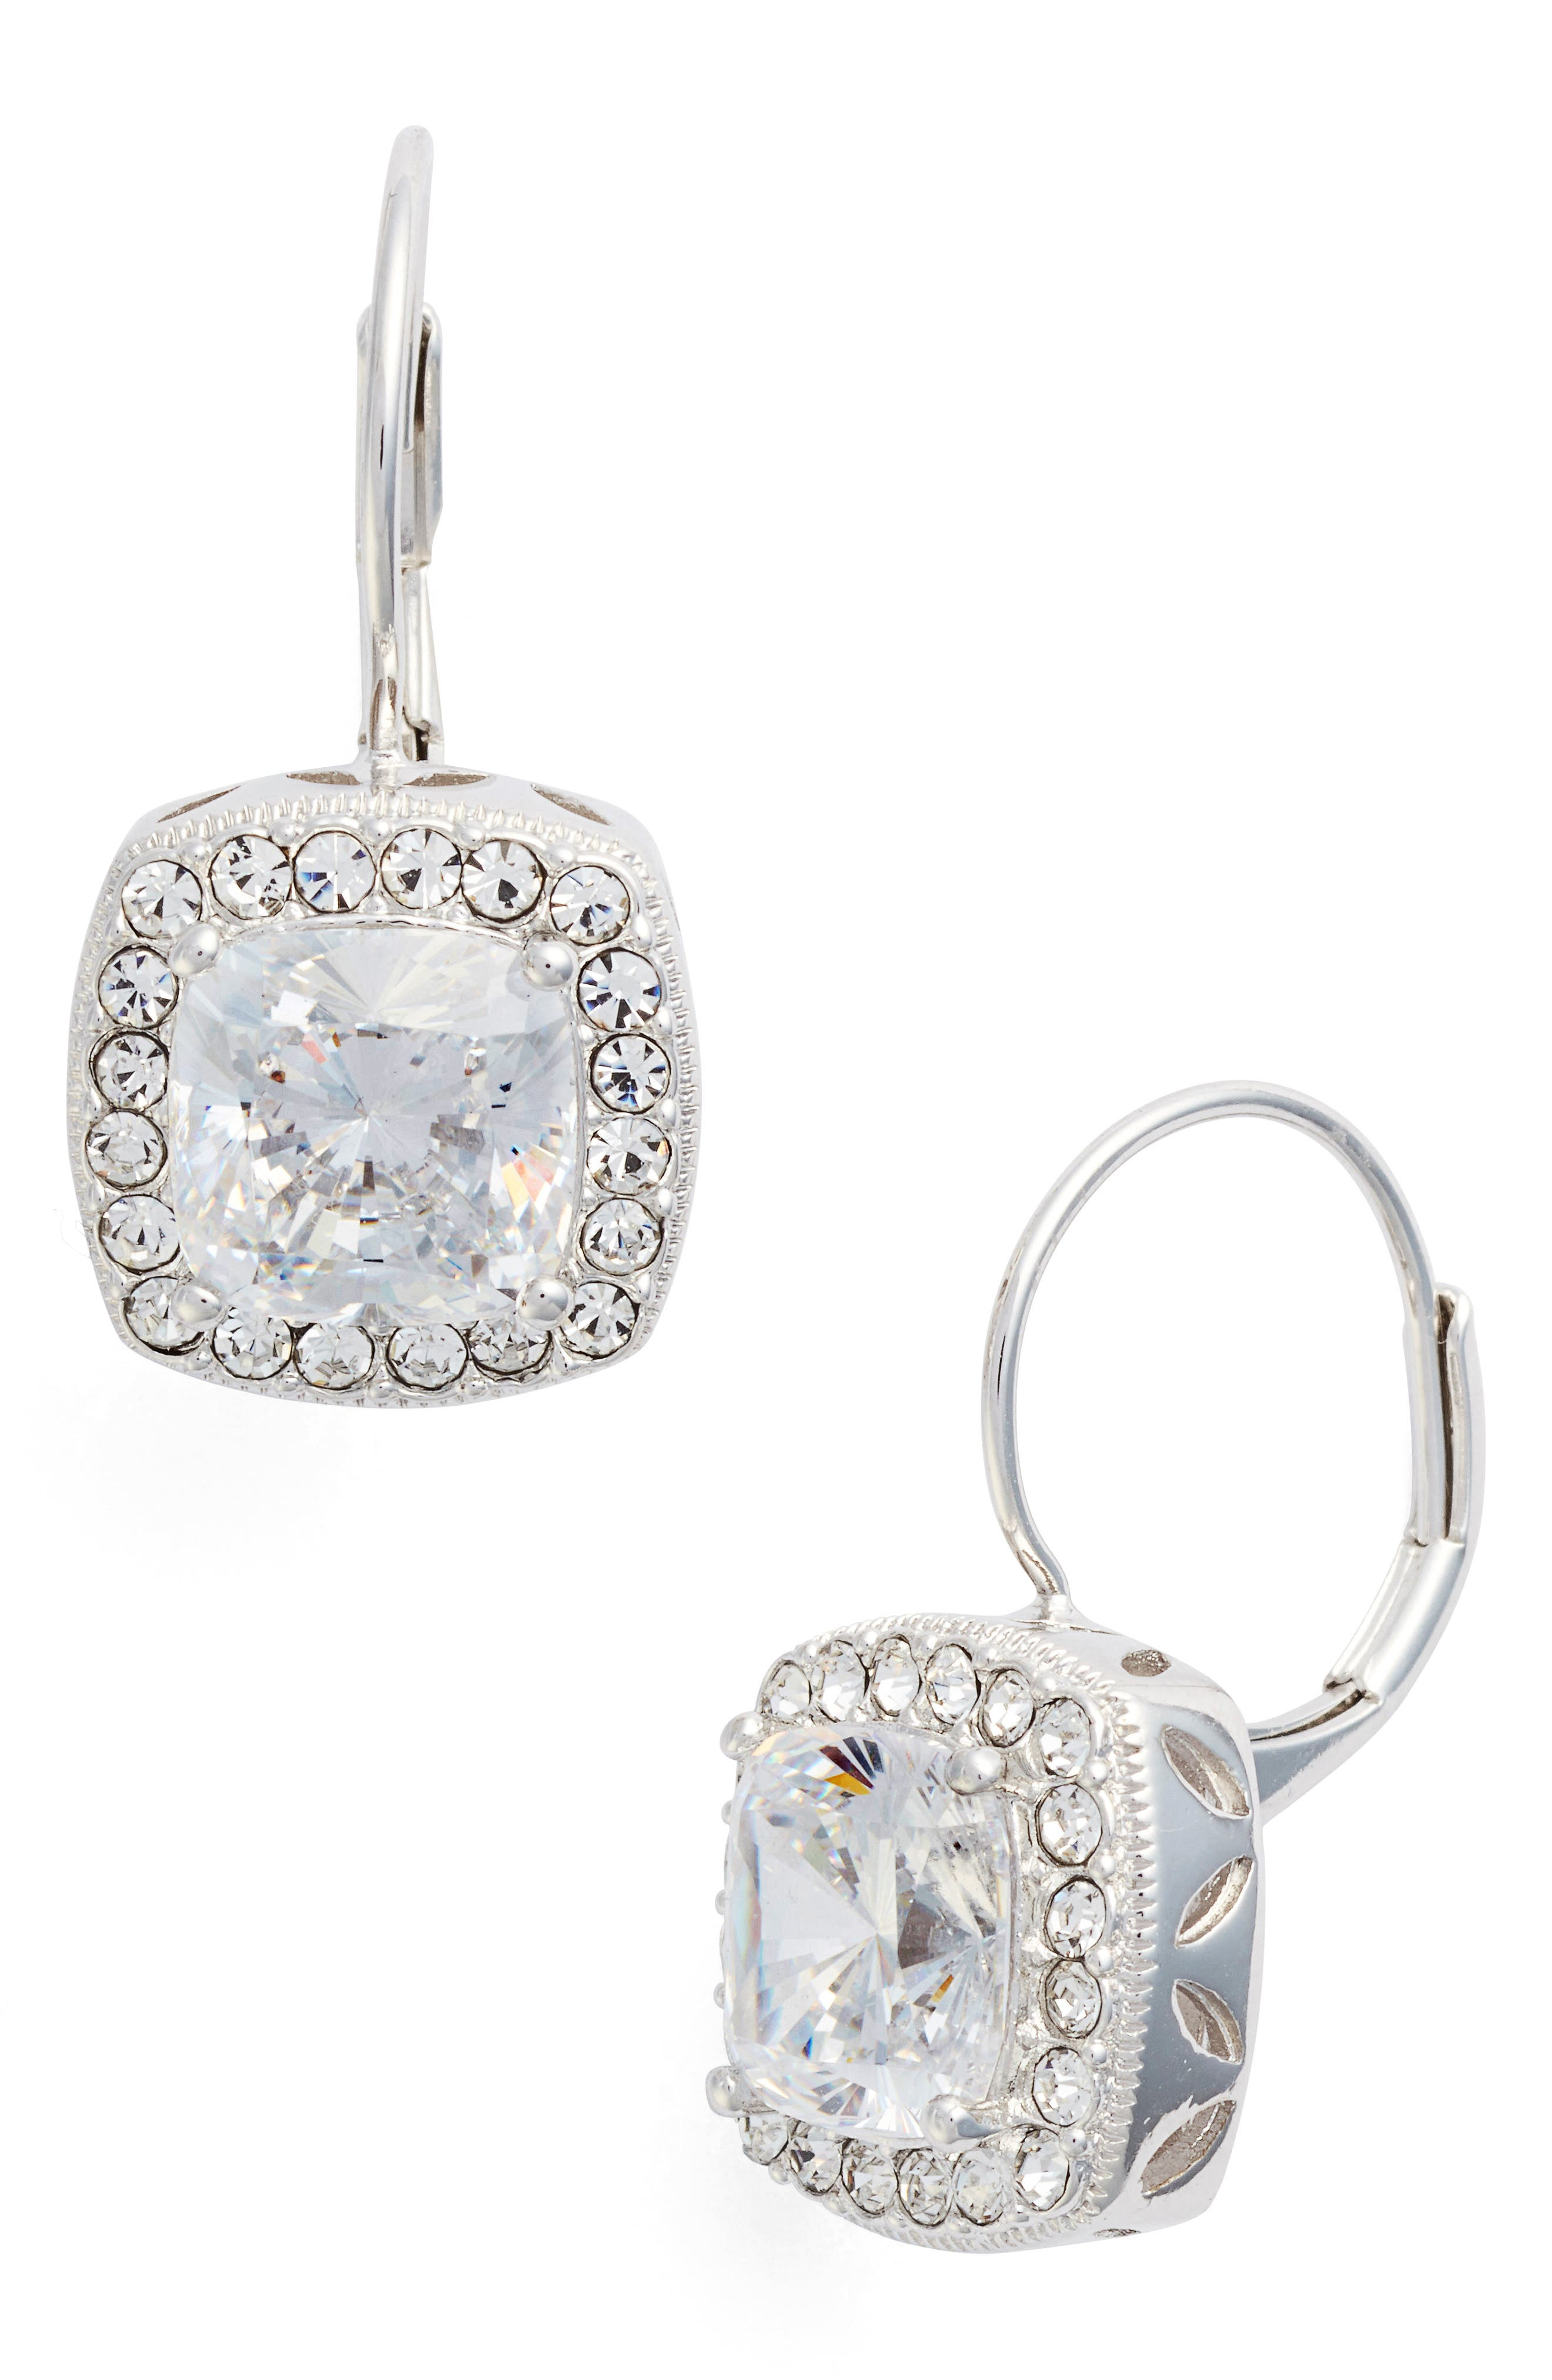 Cubic Zirconia Drop Earrings,                         Main,                         color, Silver